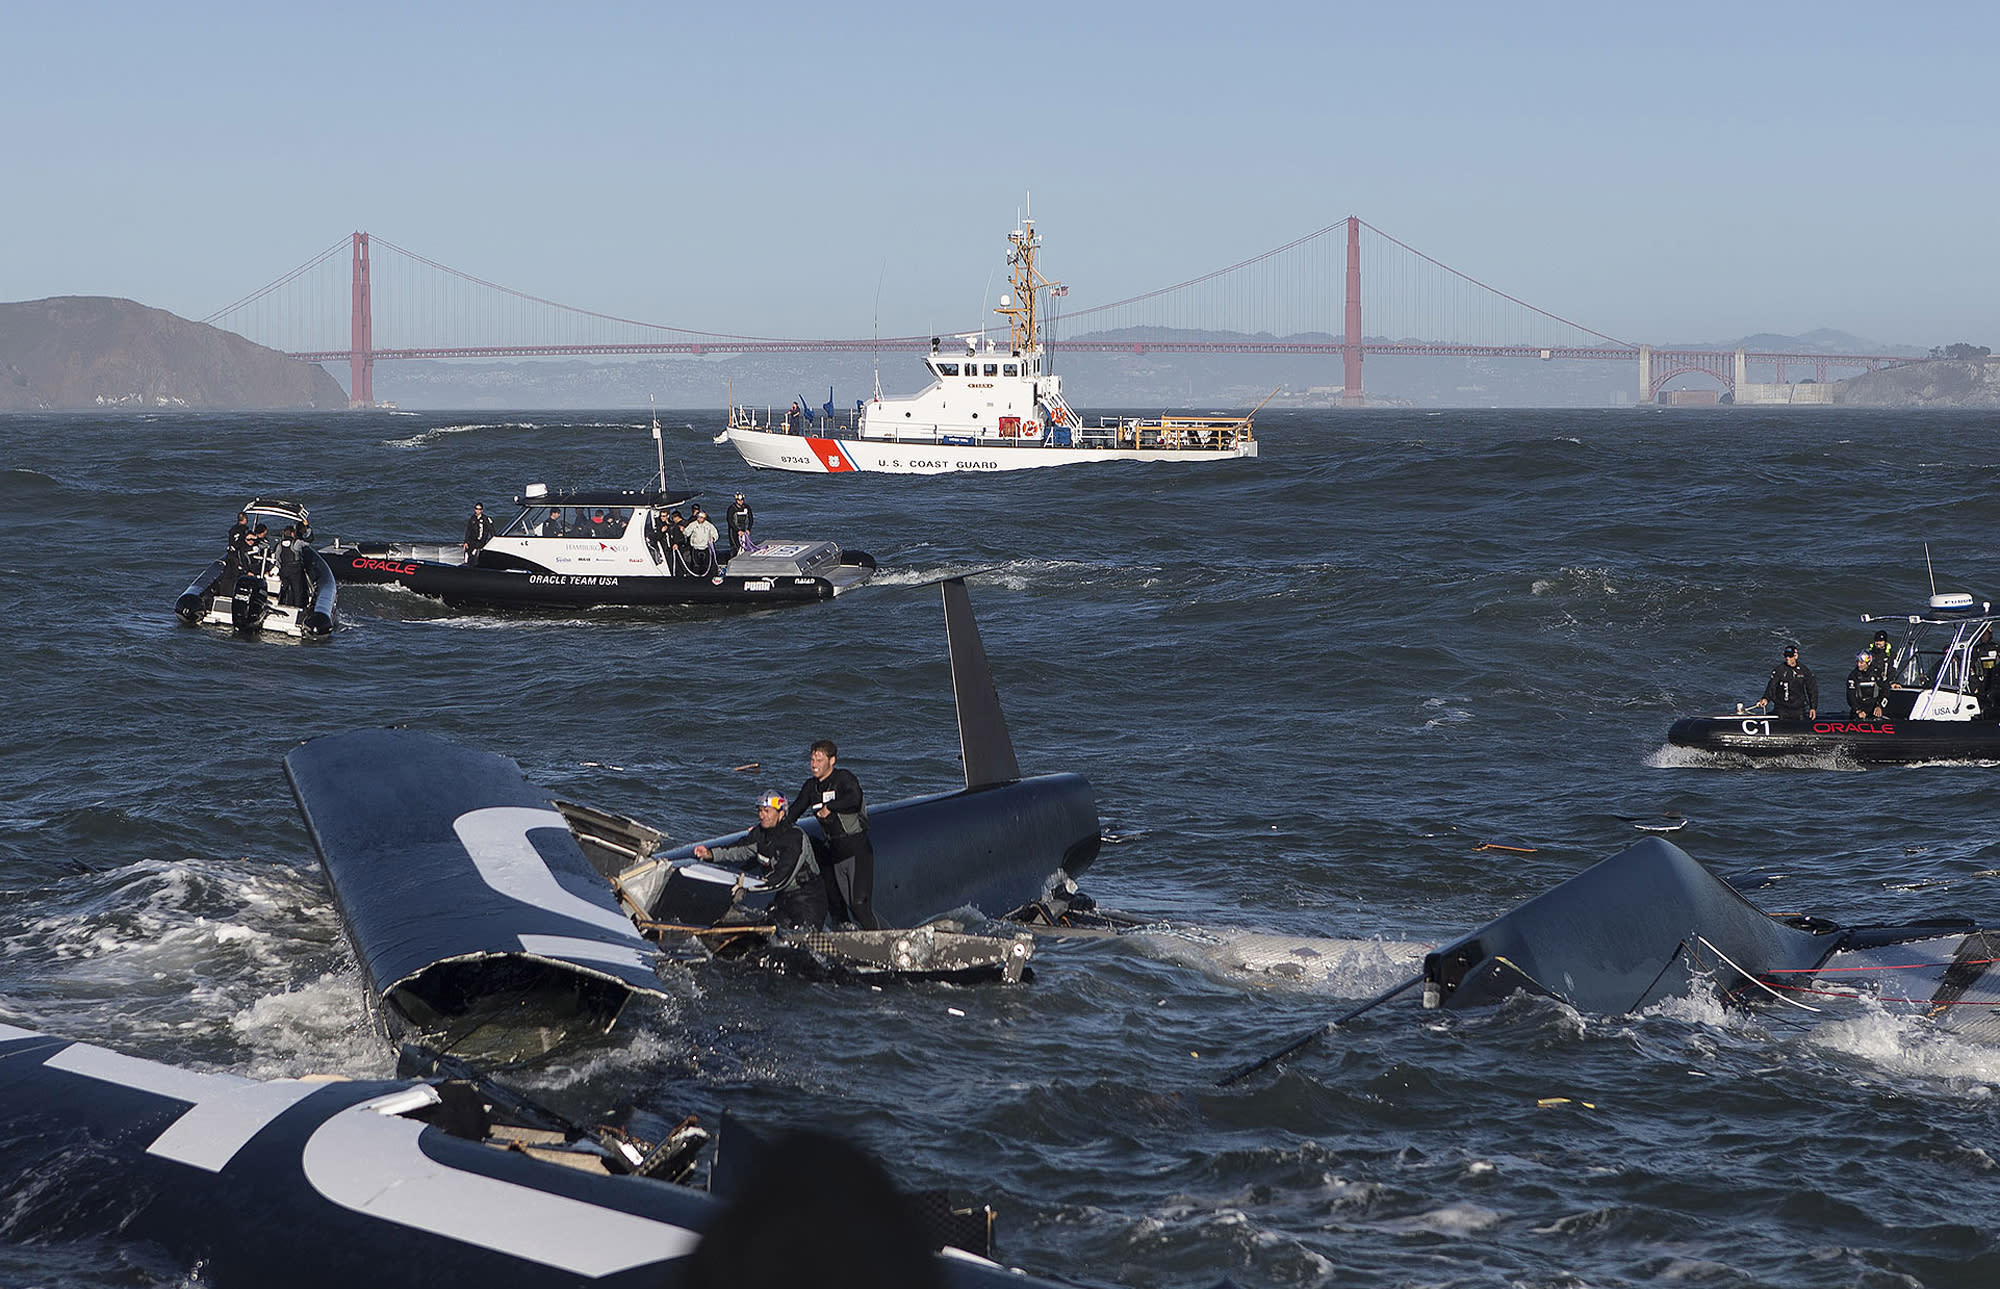 In this photo taken Tuesday Oct. 16, 2012 and provided by Oracle Team USA, crew members of the capsized Oracle Team USA AC72 boat are rescued after being swept past the Golden Gate Bridge in San Francisco. The America's Cup champion syndicate is assessing the damage to its 72-foot (22-meter) catamaran, after it capsized and was swept by a strong current more than four miles (six kilometers) past the Golden Gate Bridge before rescue boats could control it.(AP Photo/Oracle Team USA, Guilain Grenier) MANDATORY CREDIT